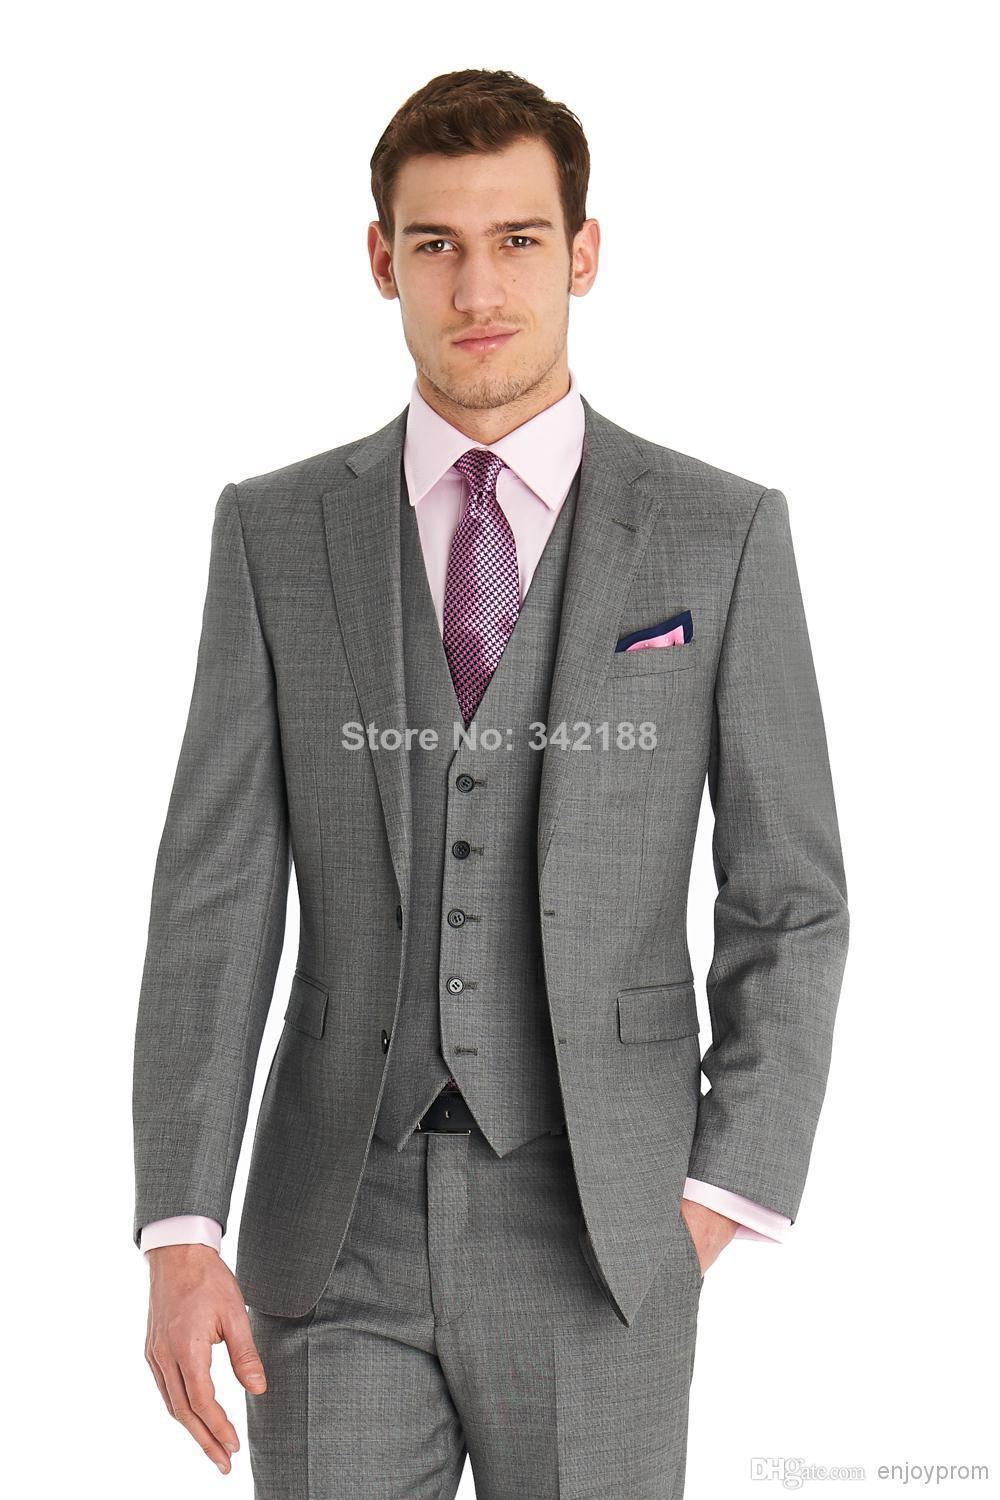 Gray Dress Suit Dress Yy